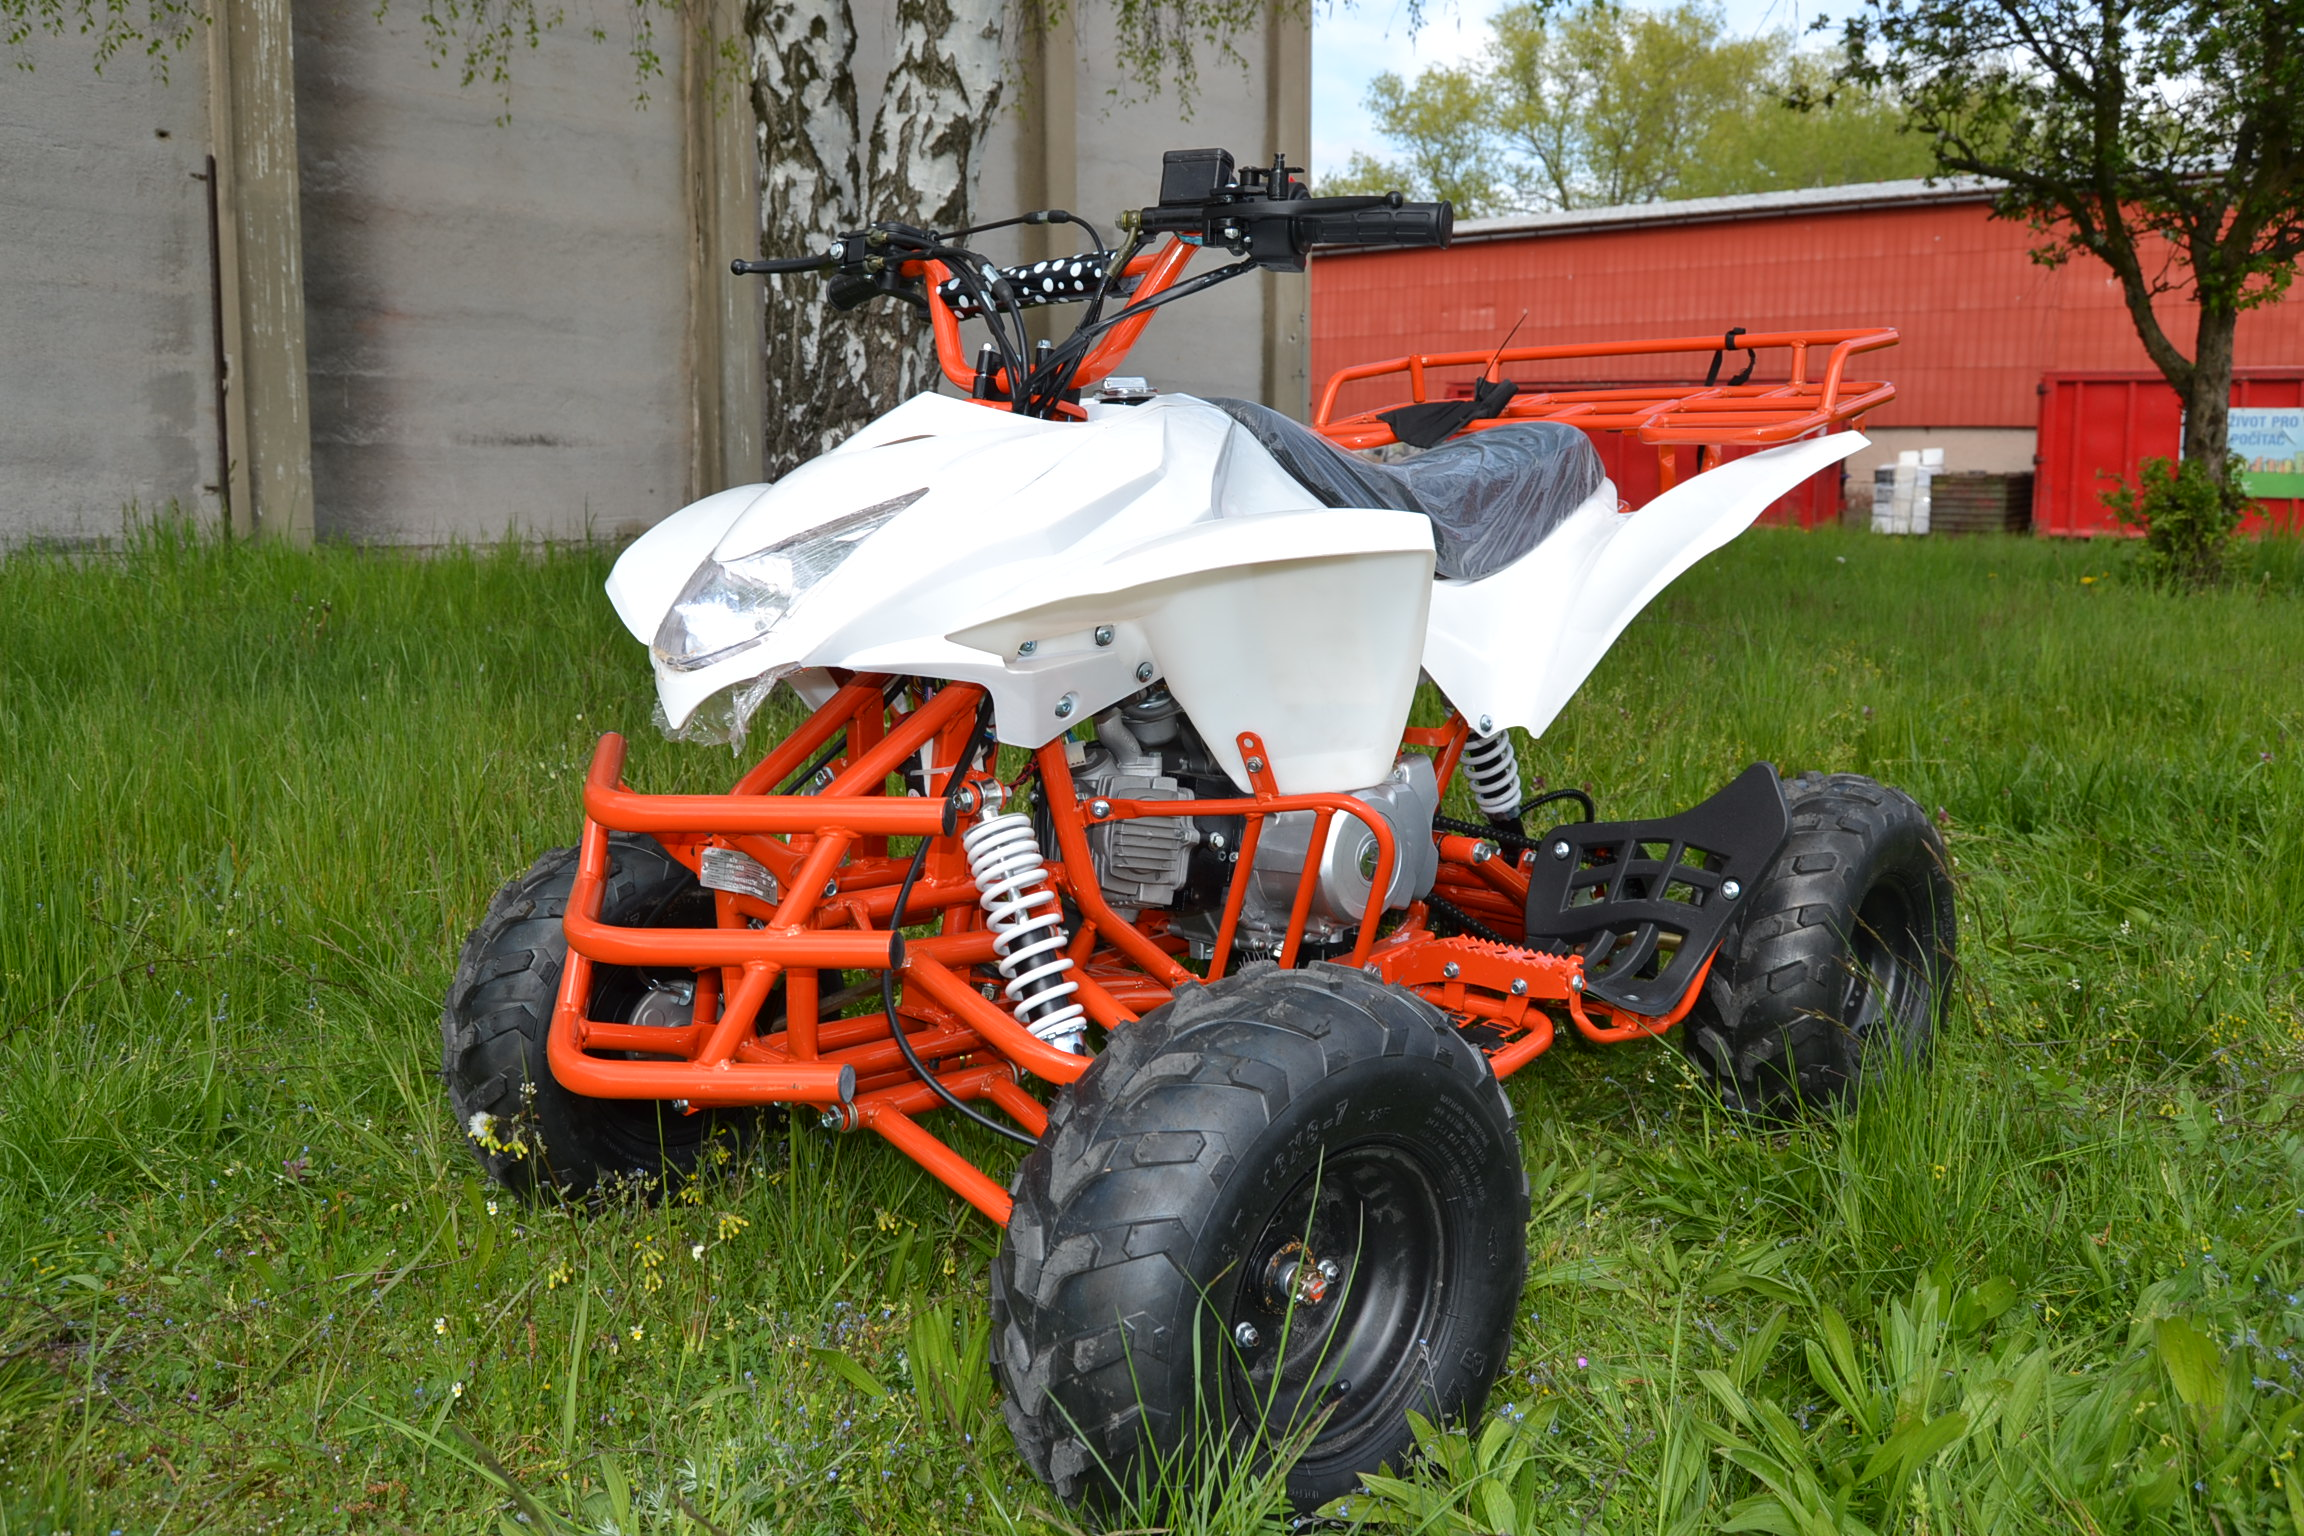 ATV Goliash 110ccm